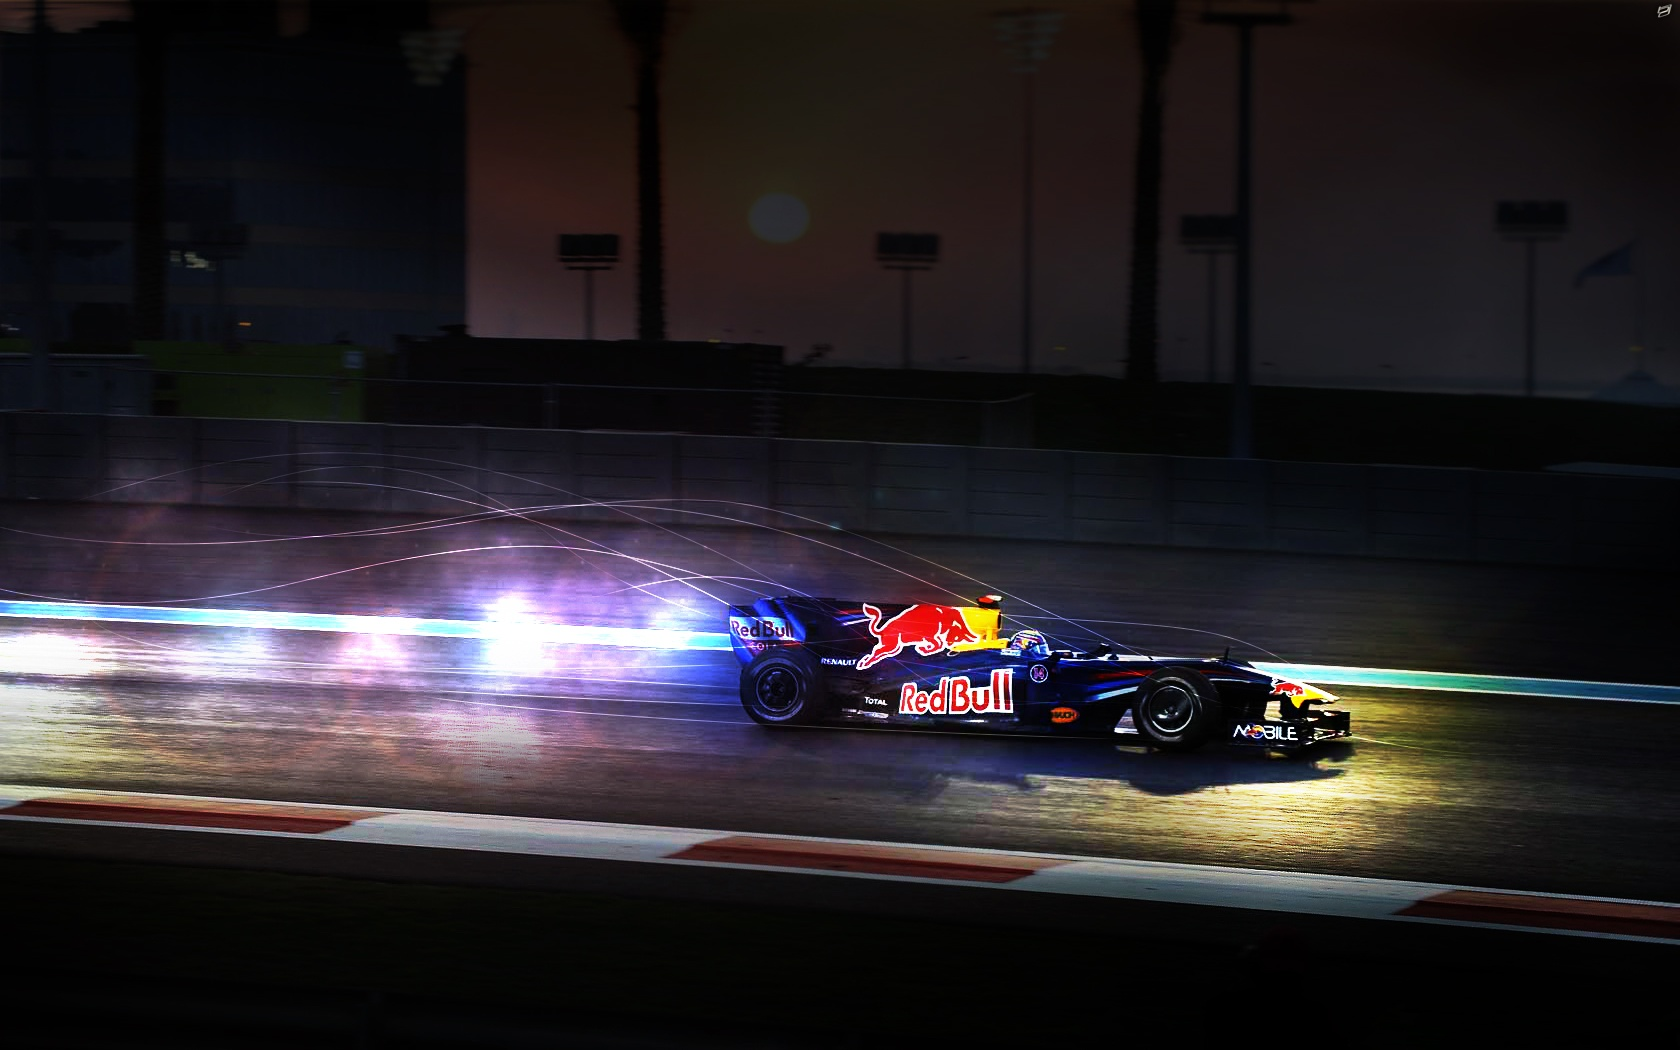 Red Bull F1 Wallpapers Red Bull F1 Backgrounds Red Bull F1 HD 1680x1050